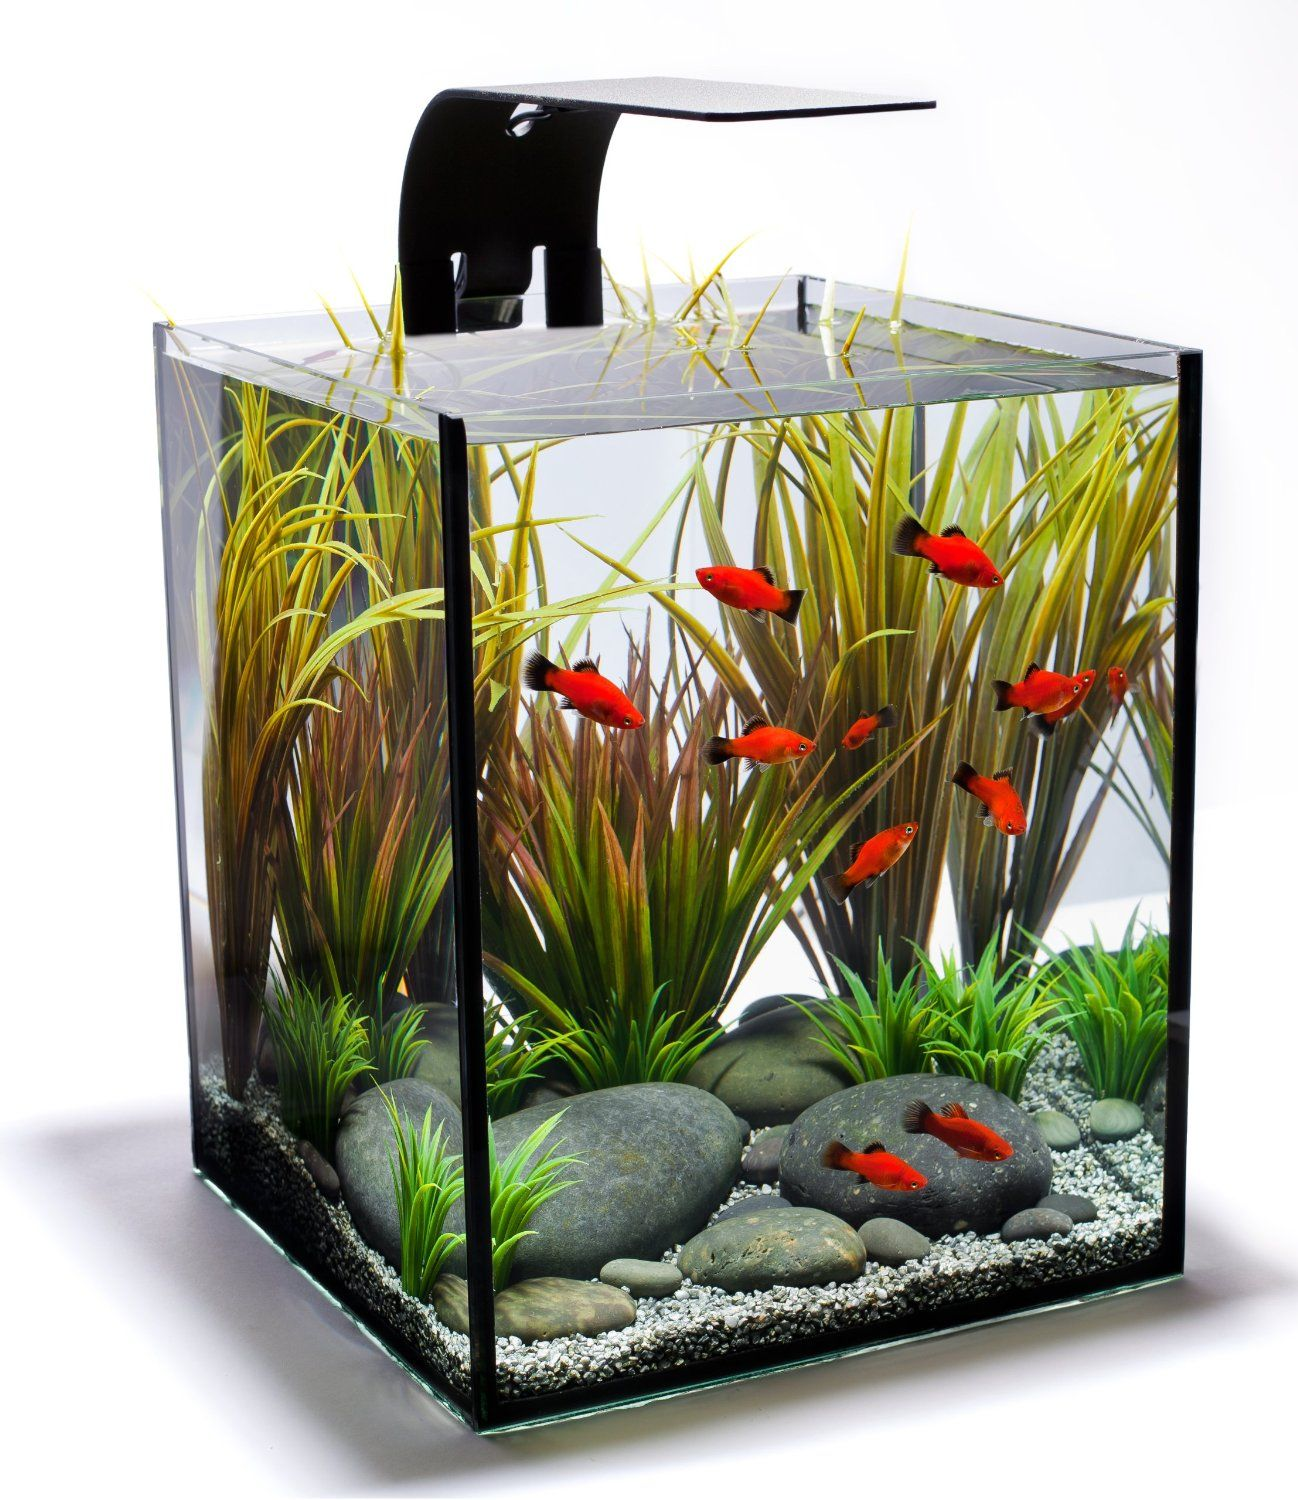 Diy Creative Aquarium Natural Decorations For Homes Nationtrendz Com 9  Handmade Fish Tank Collection 67.